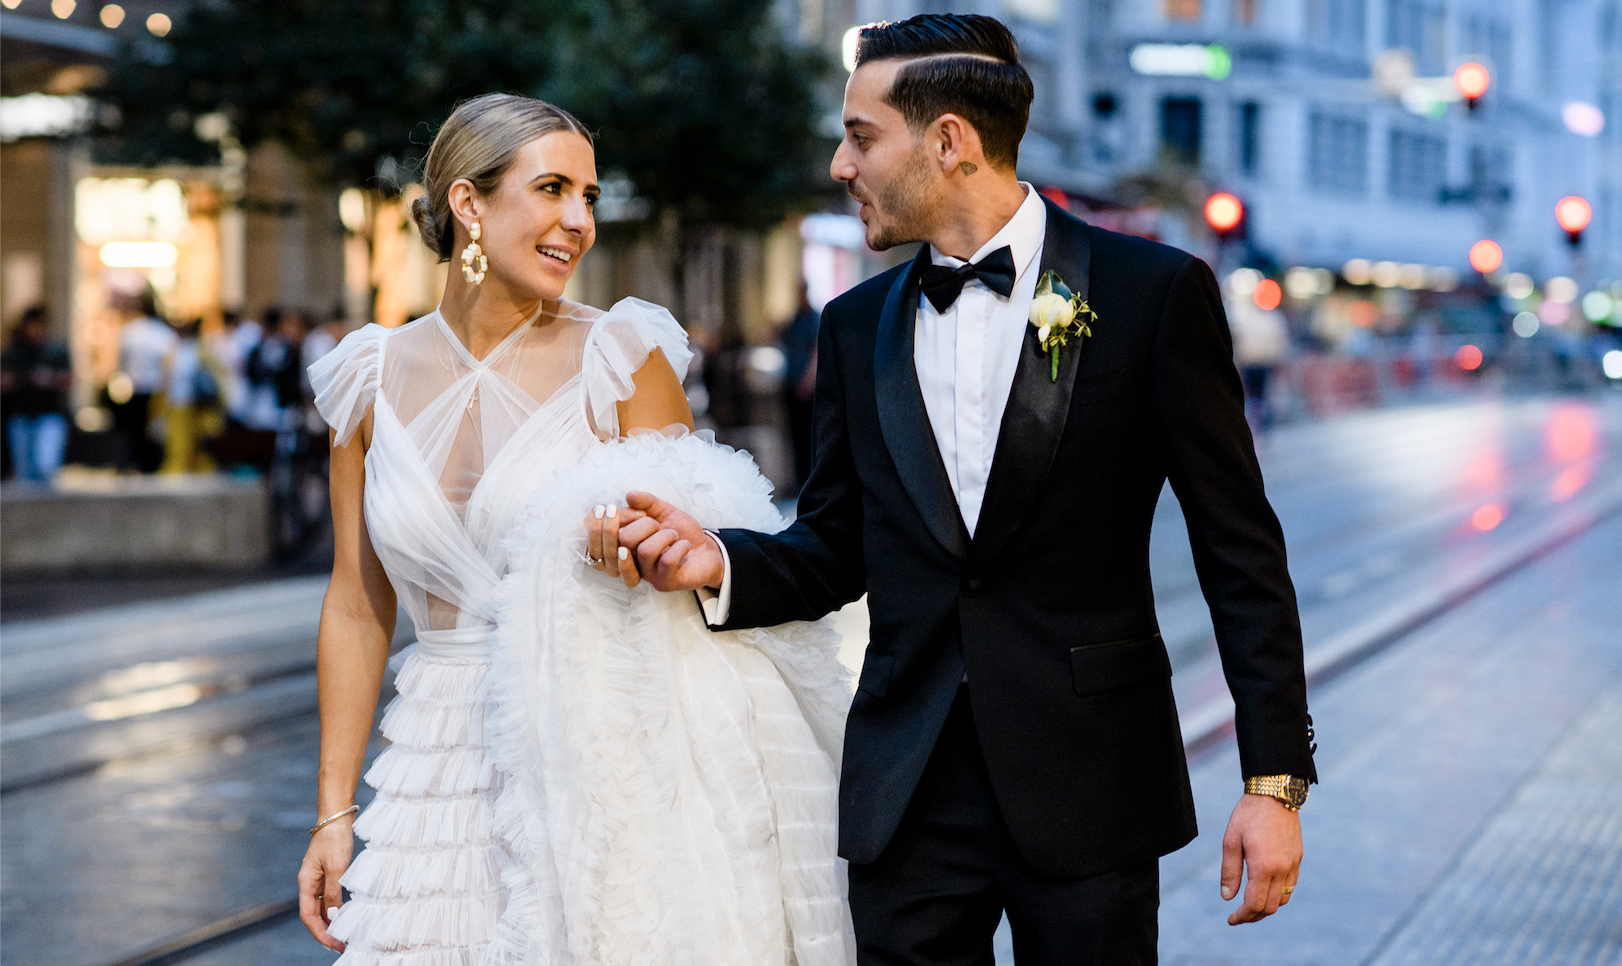 A New York City Style Wedding In Sydney's CBD